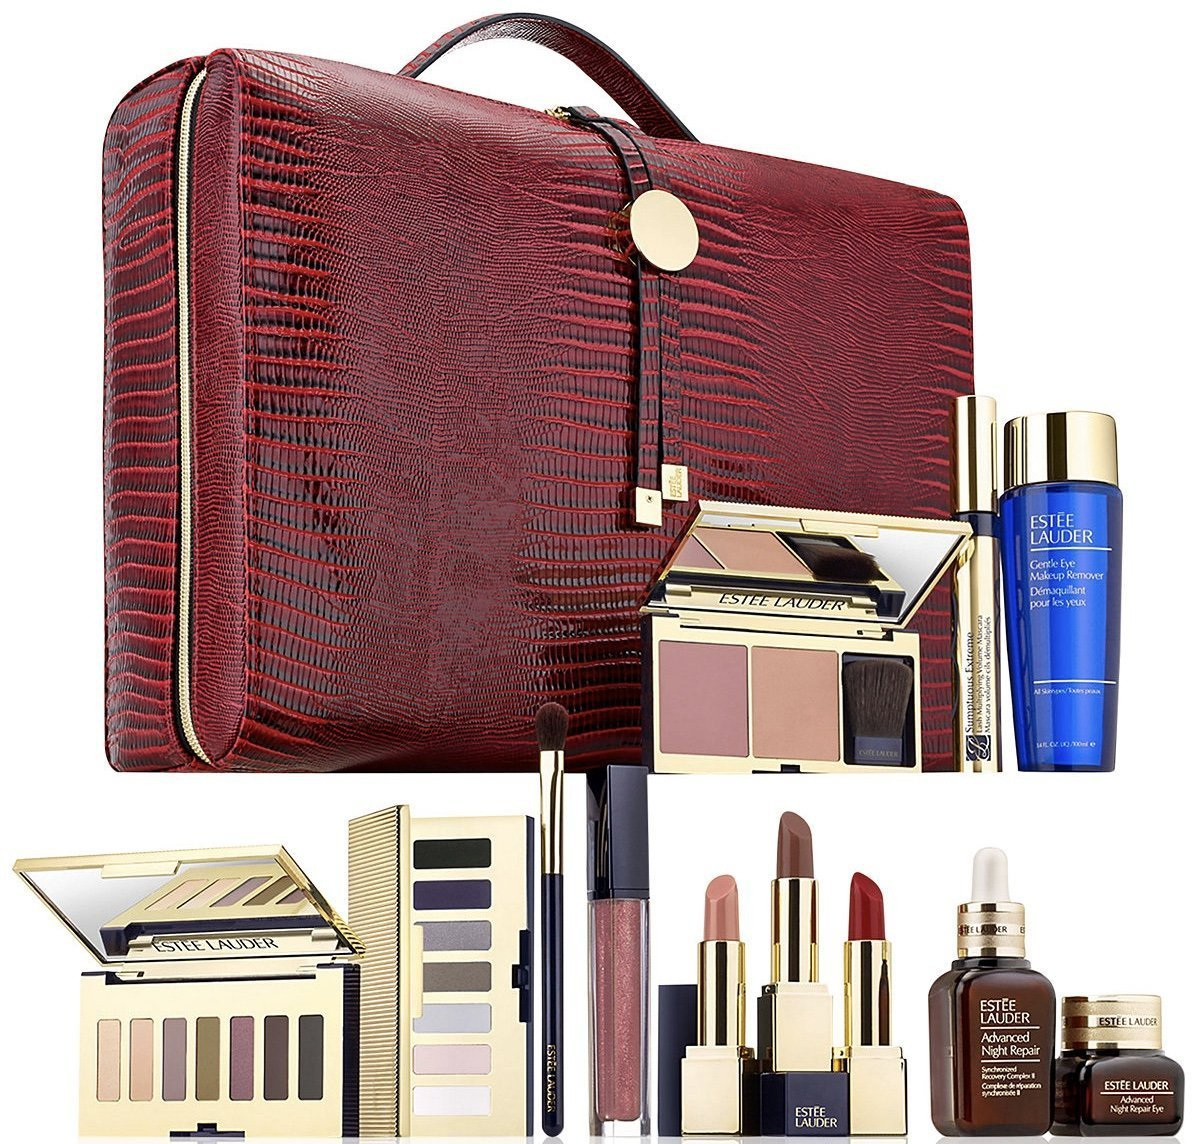 estee lauder modern classics 12 full size favorites gift set